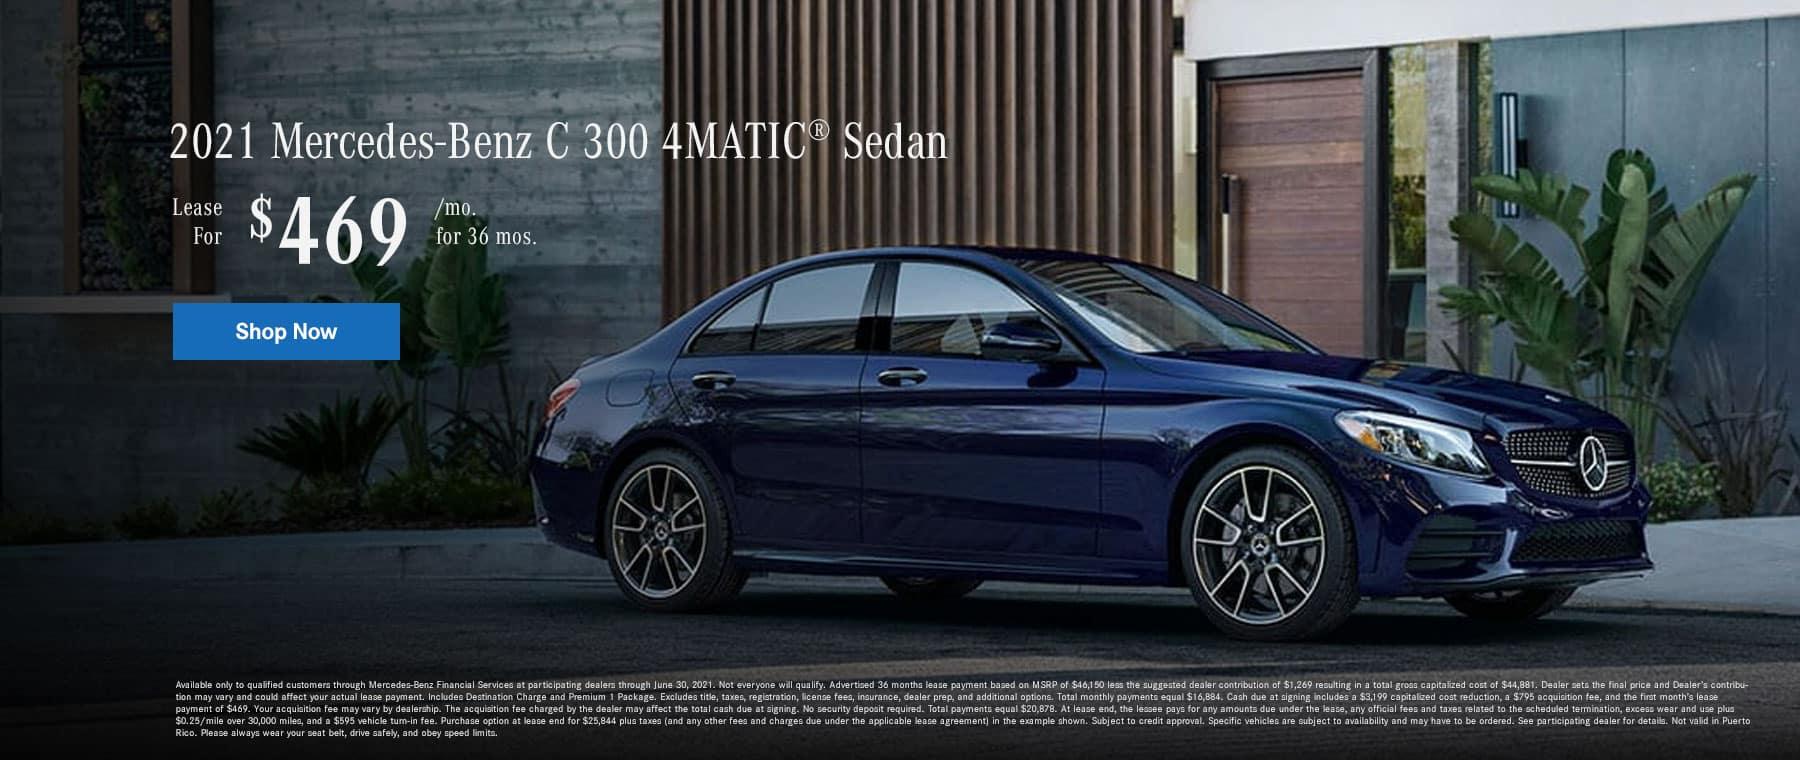 2021 Mercedes-Benz C300 4MATIC® Sedan. Lease for $469 Per Month for 36 Months